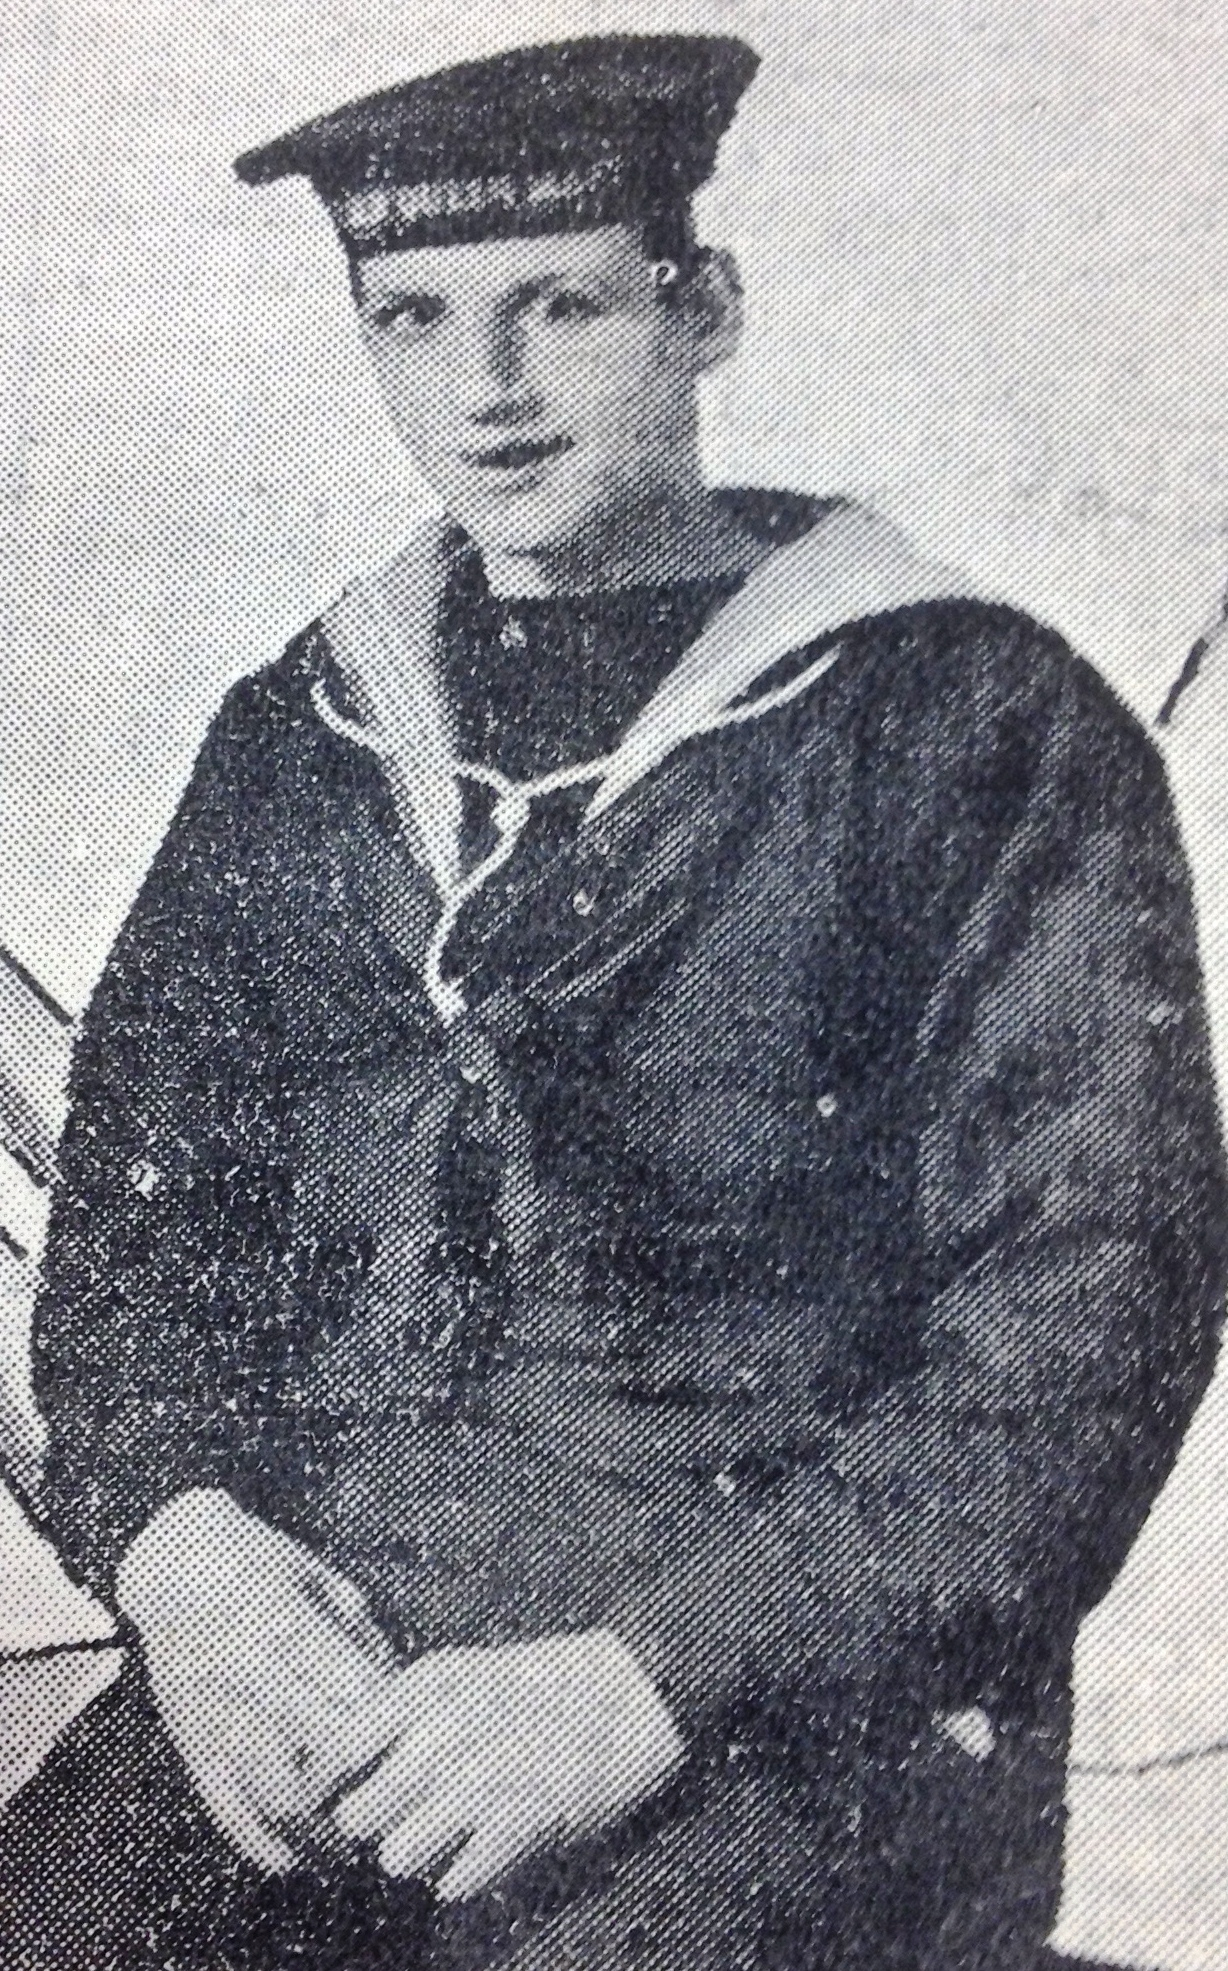 Able Seaman Thomas Morrison